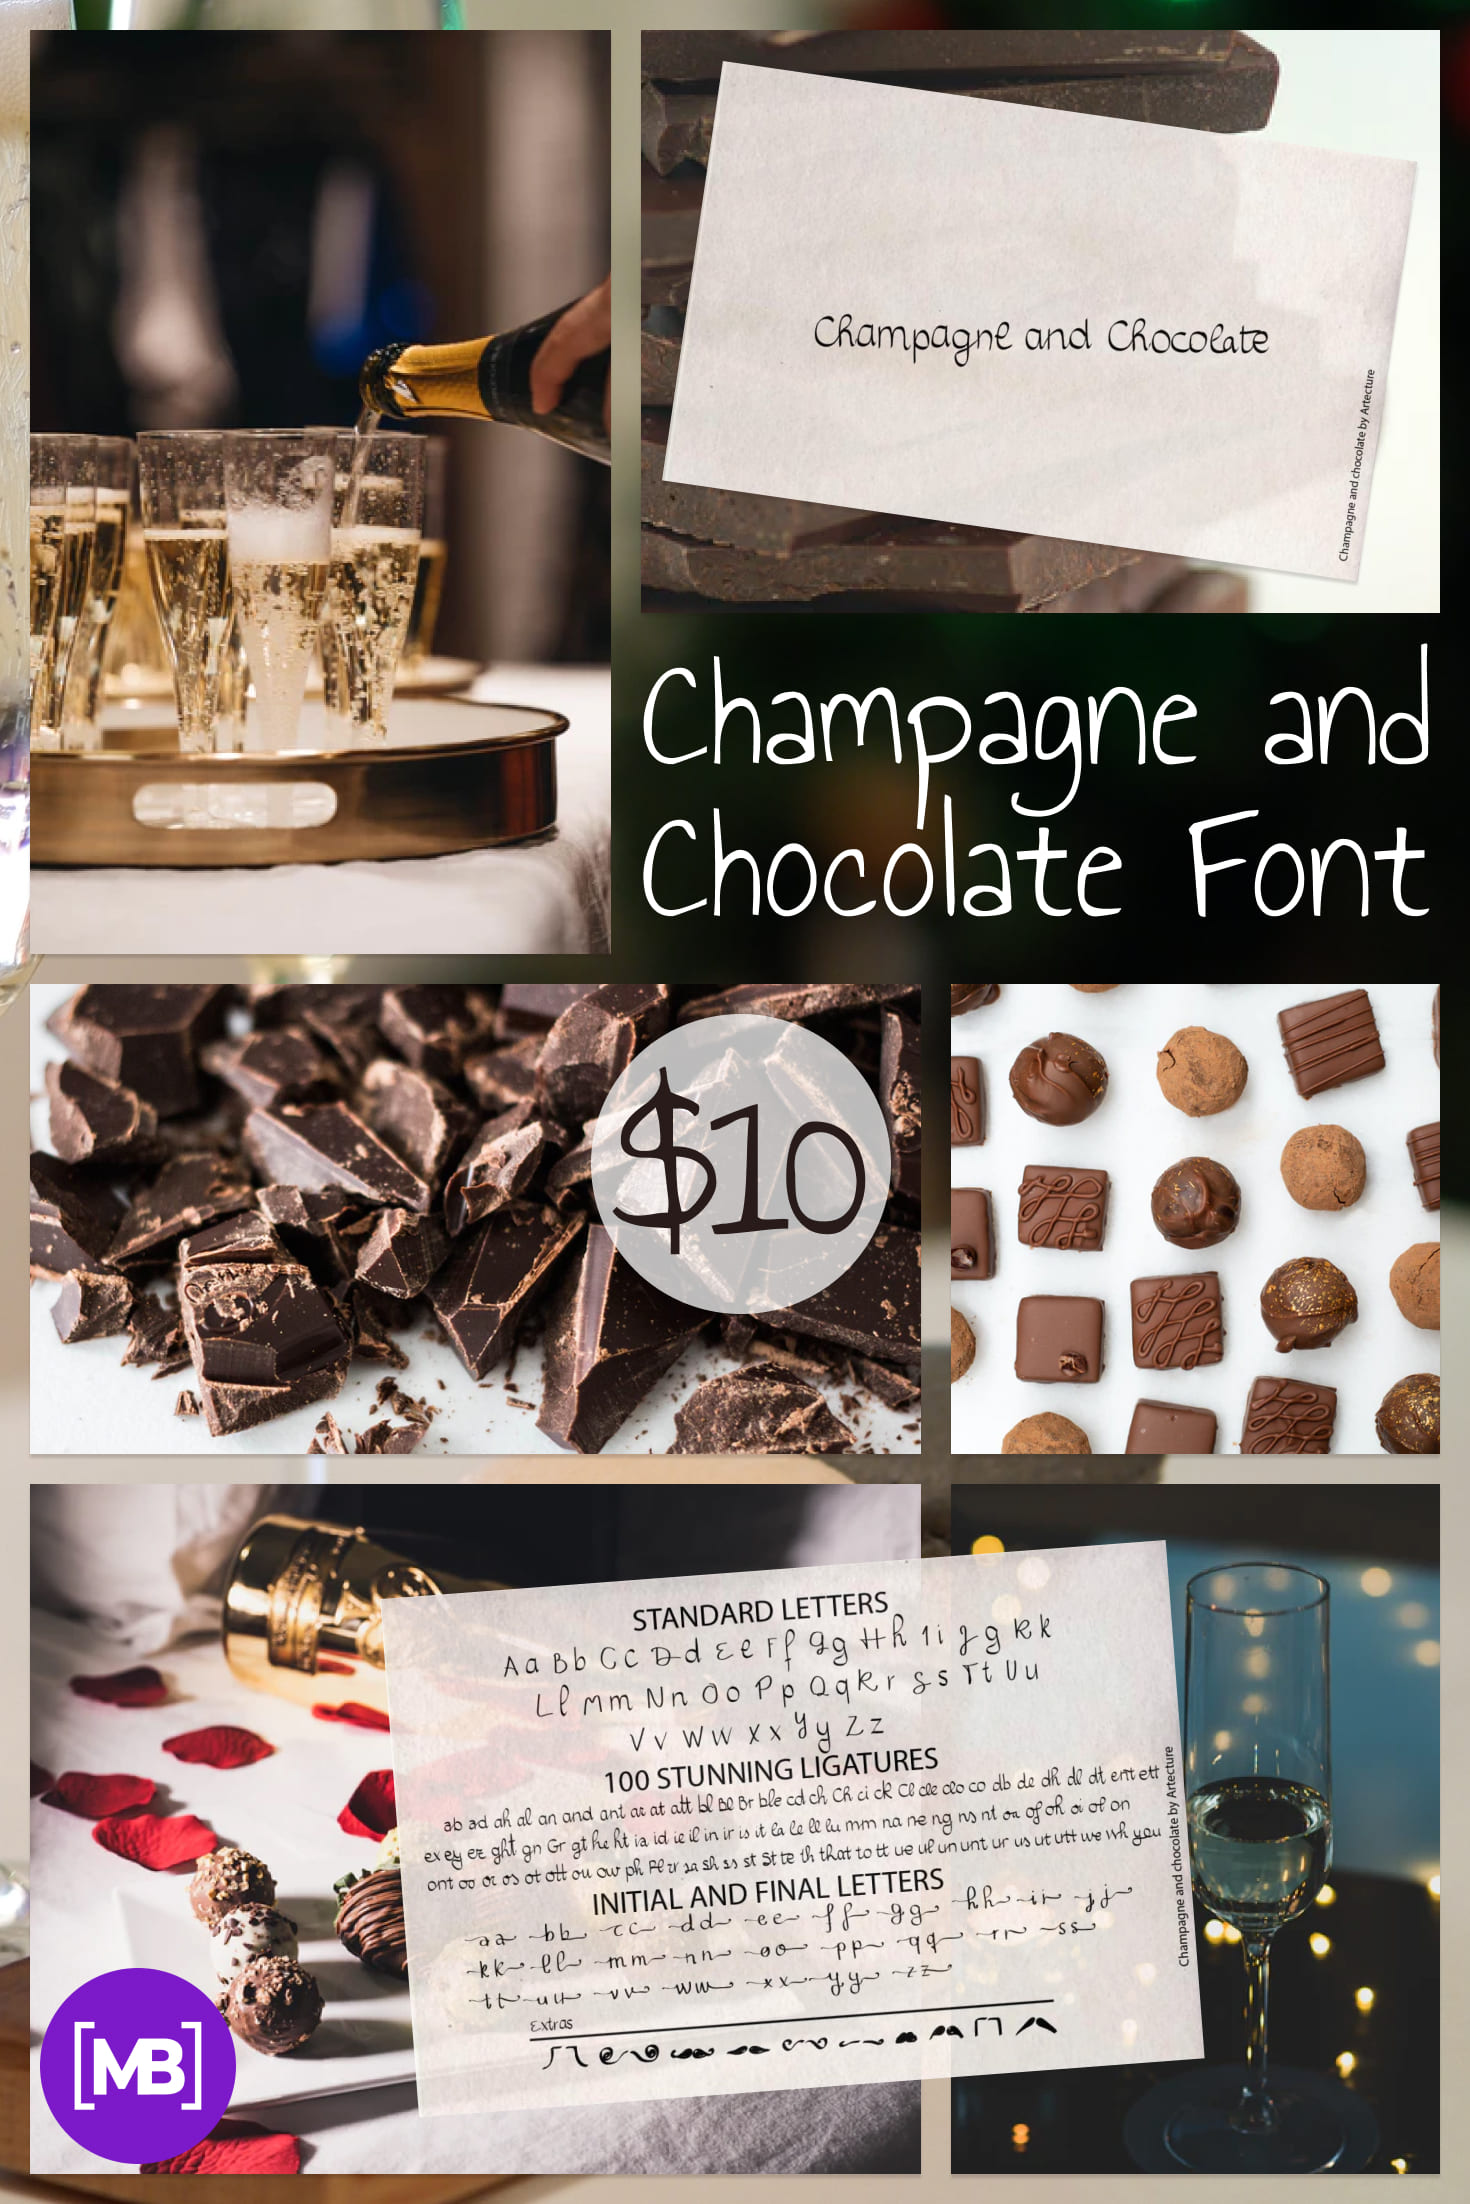 Pinterest Image: Champagne and Chocolate Font 2020 - $10.